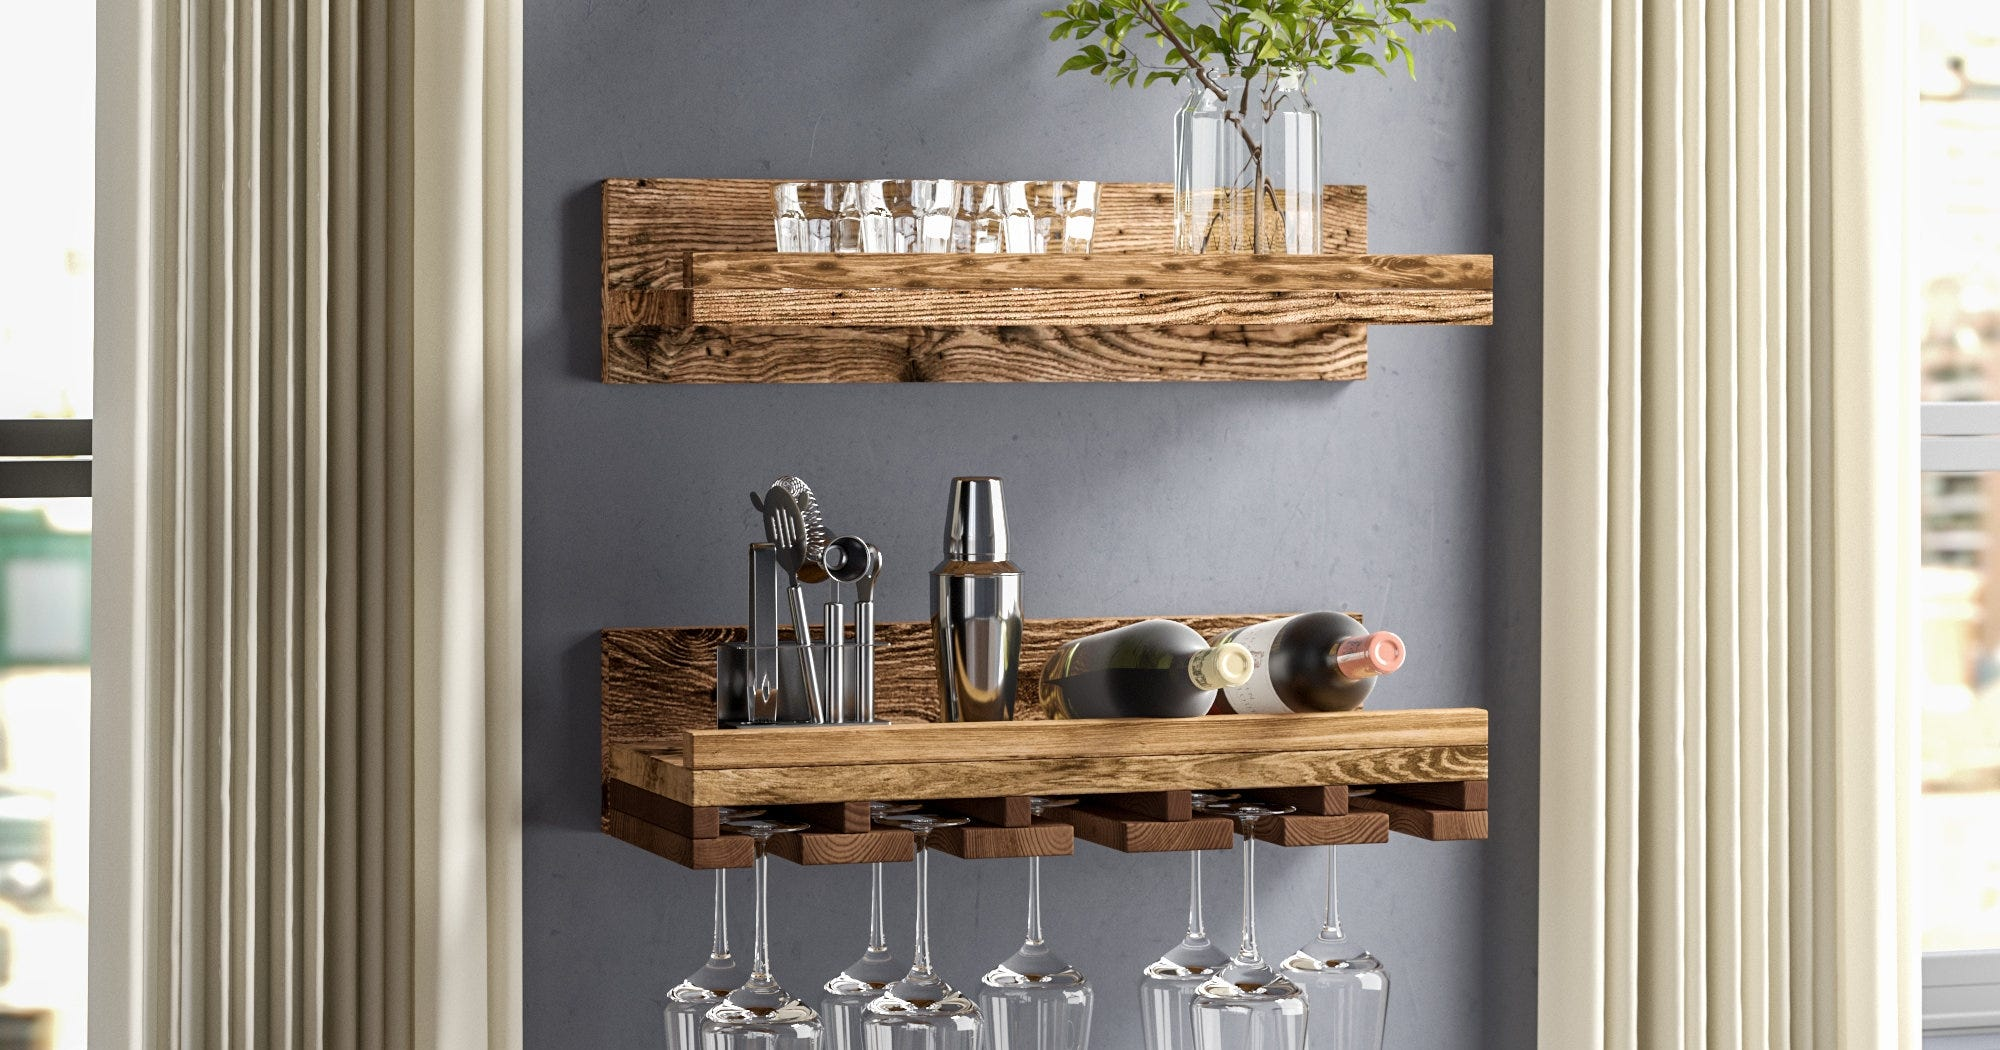 Move Over Bar Carts, Pinterest Stats Point To This Wine Storage Trend